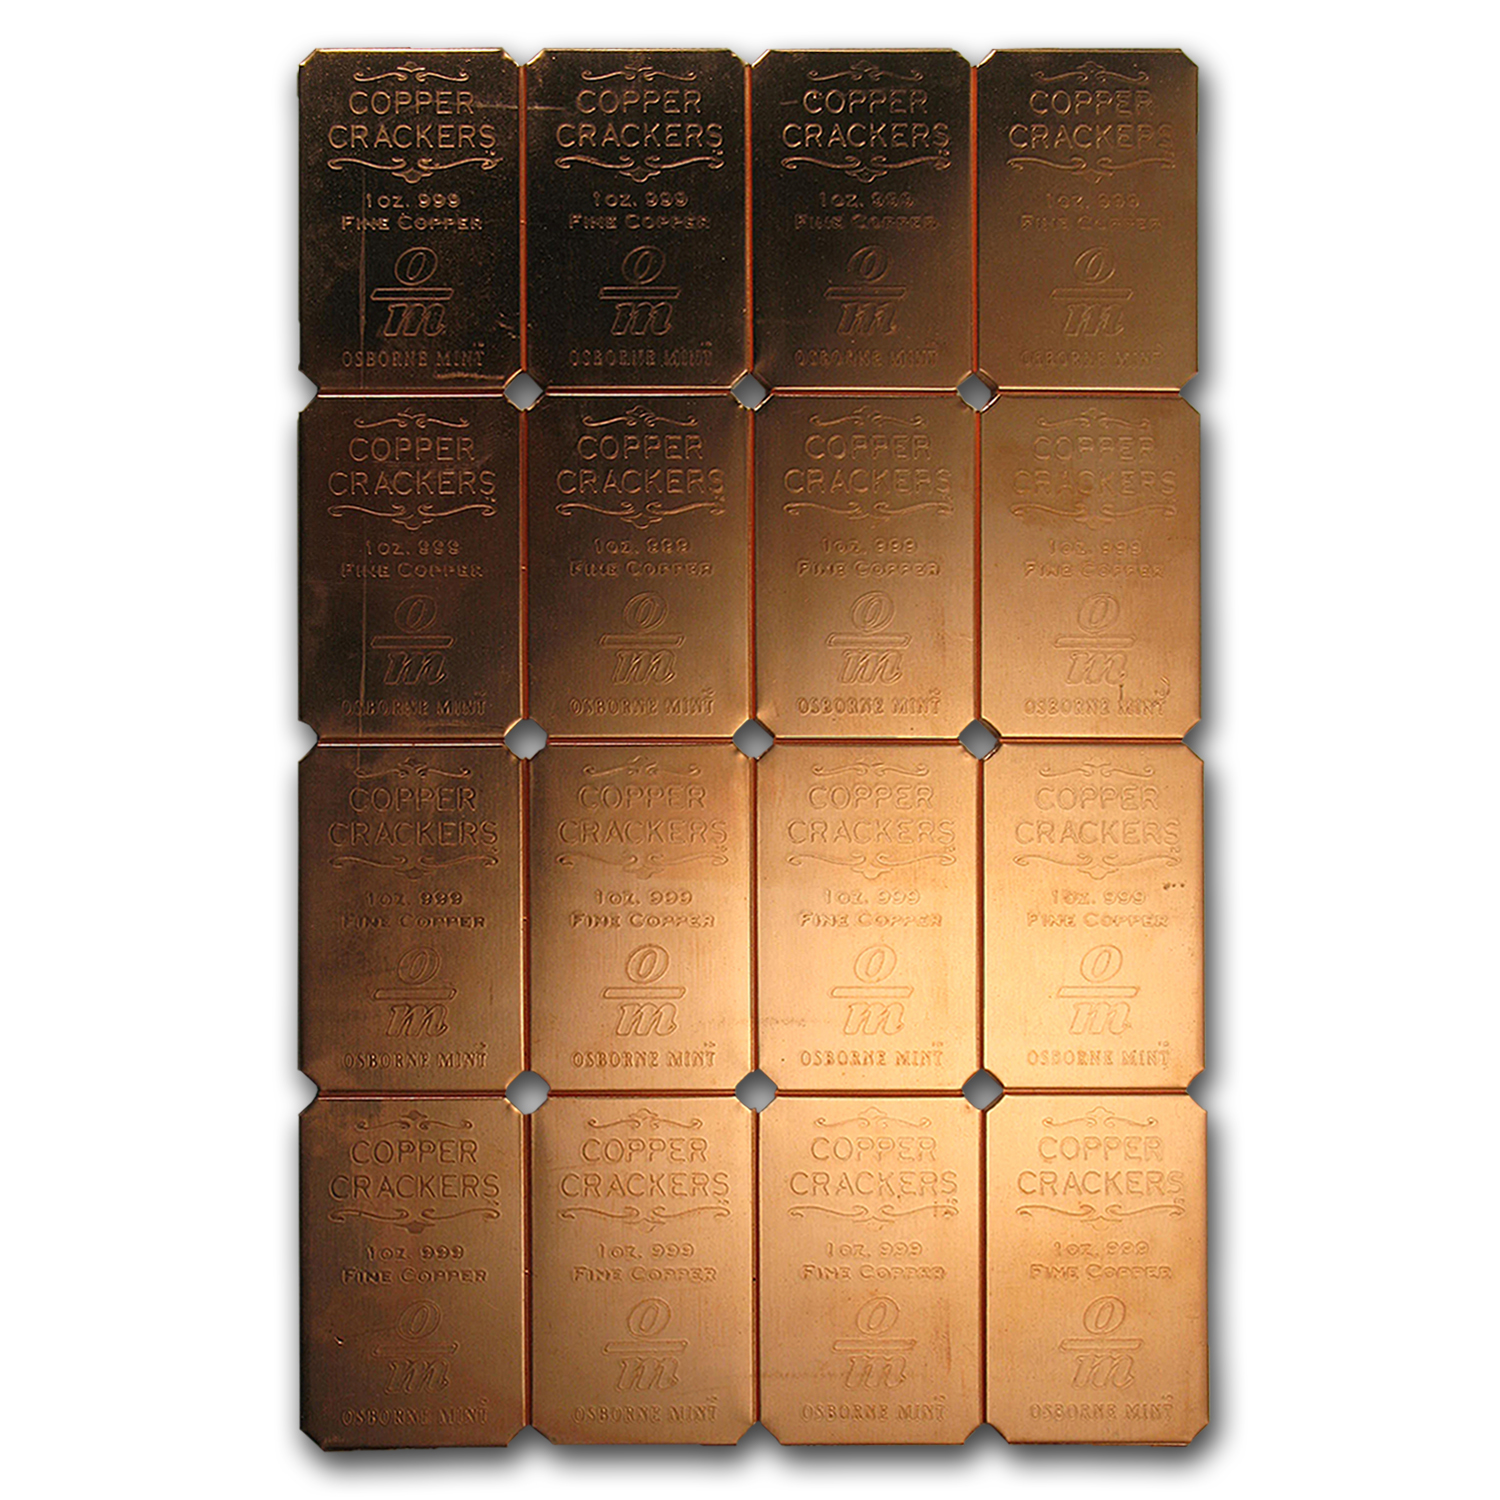 16x 1 oz Copper Bar - Cracker